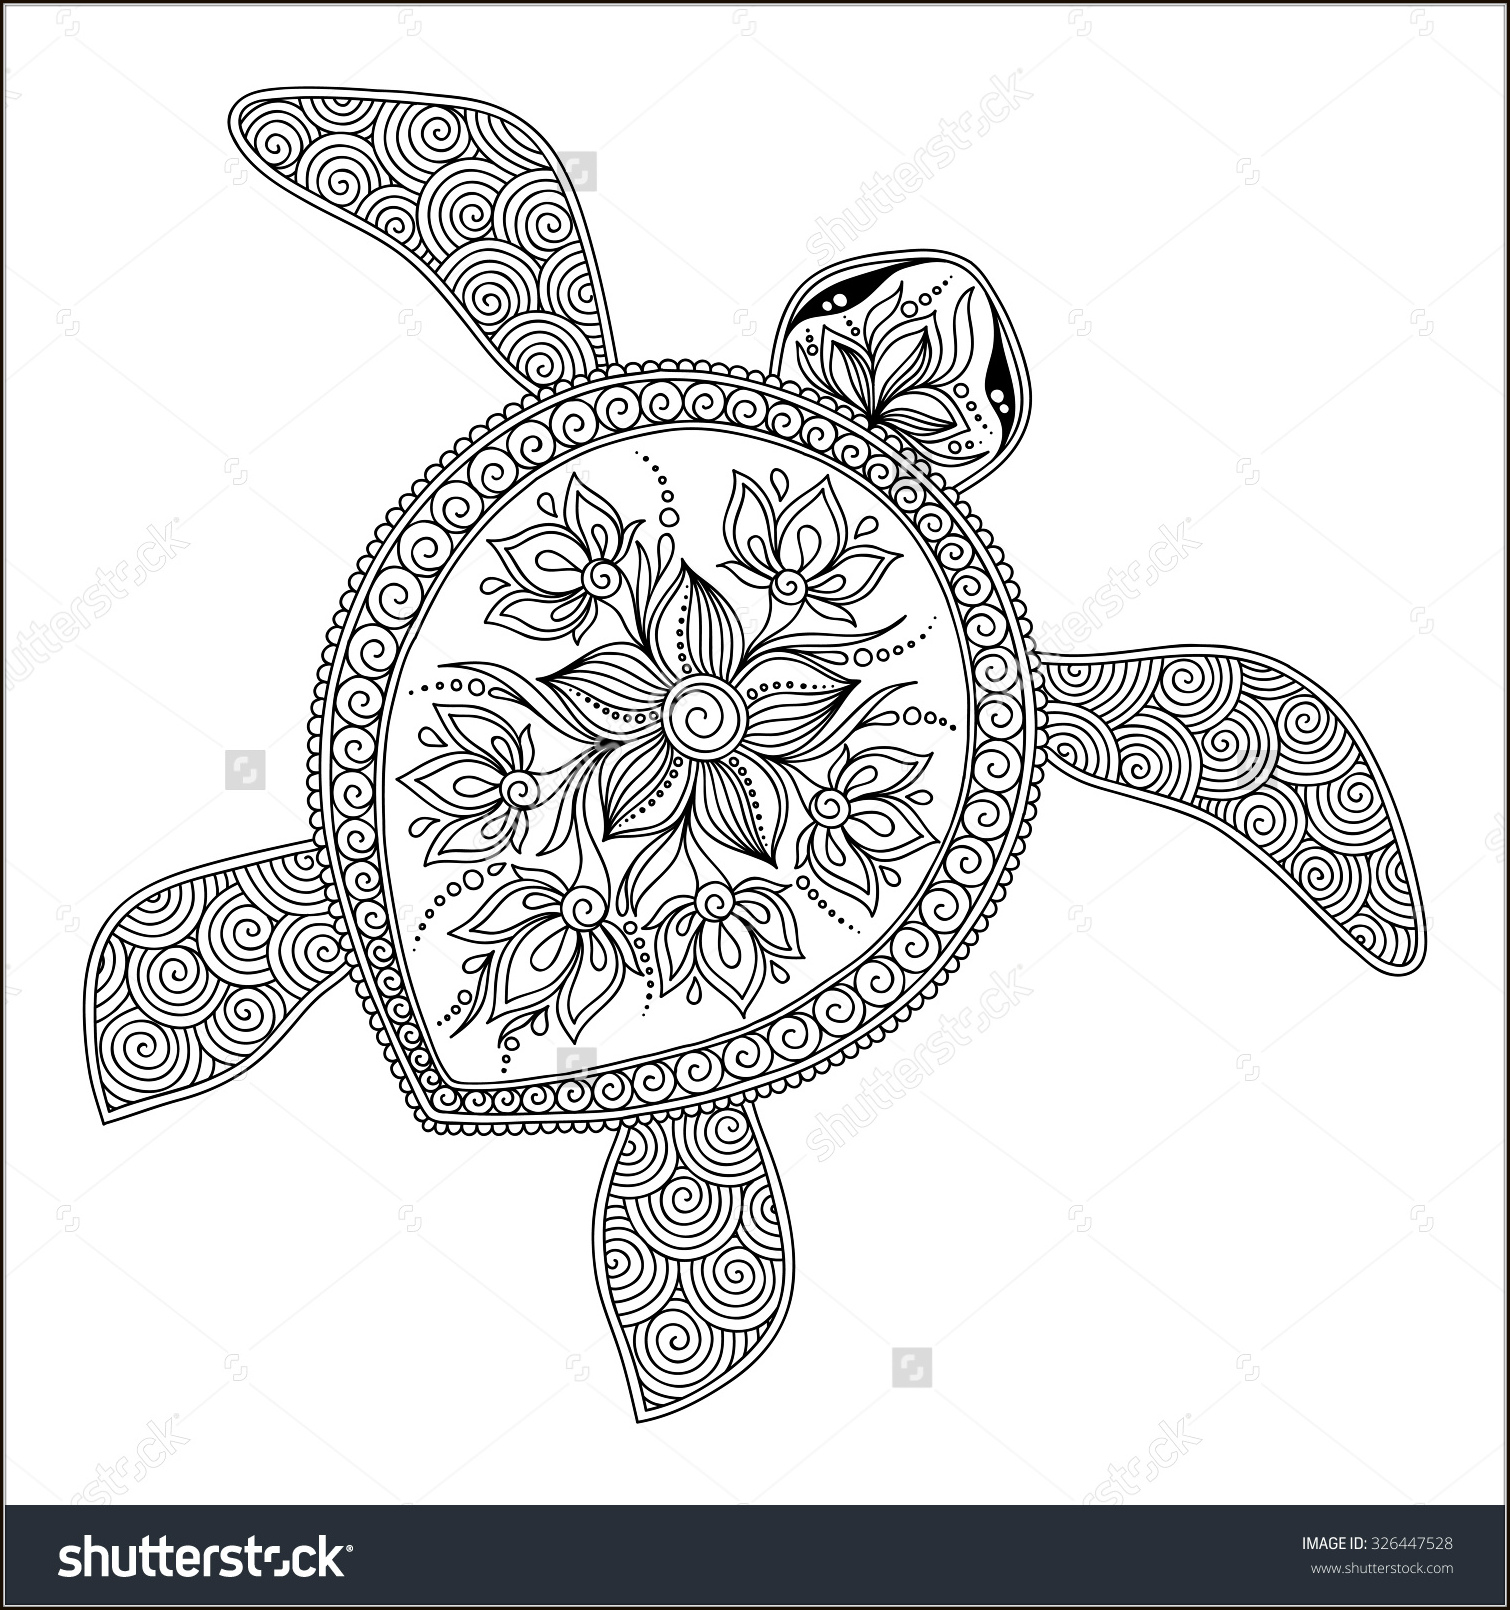 Coloring for kids and adults coloring antistress for Coloring pages turtles